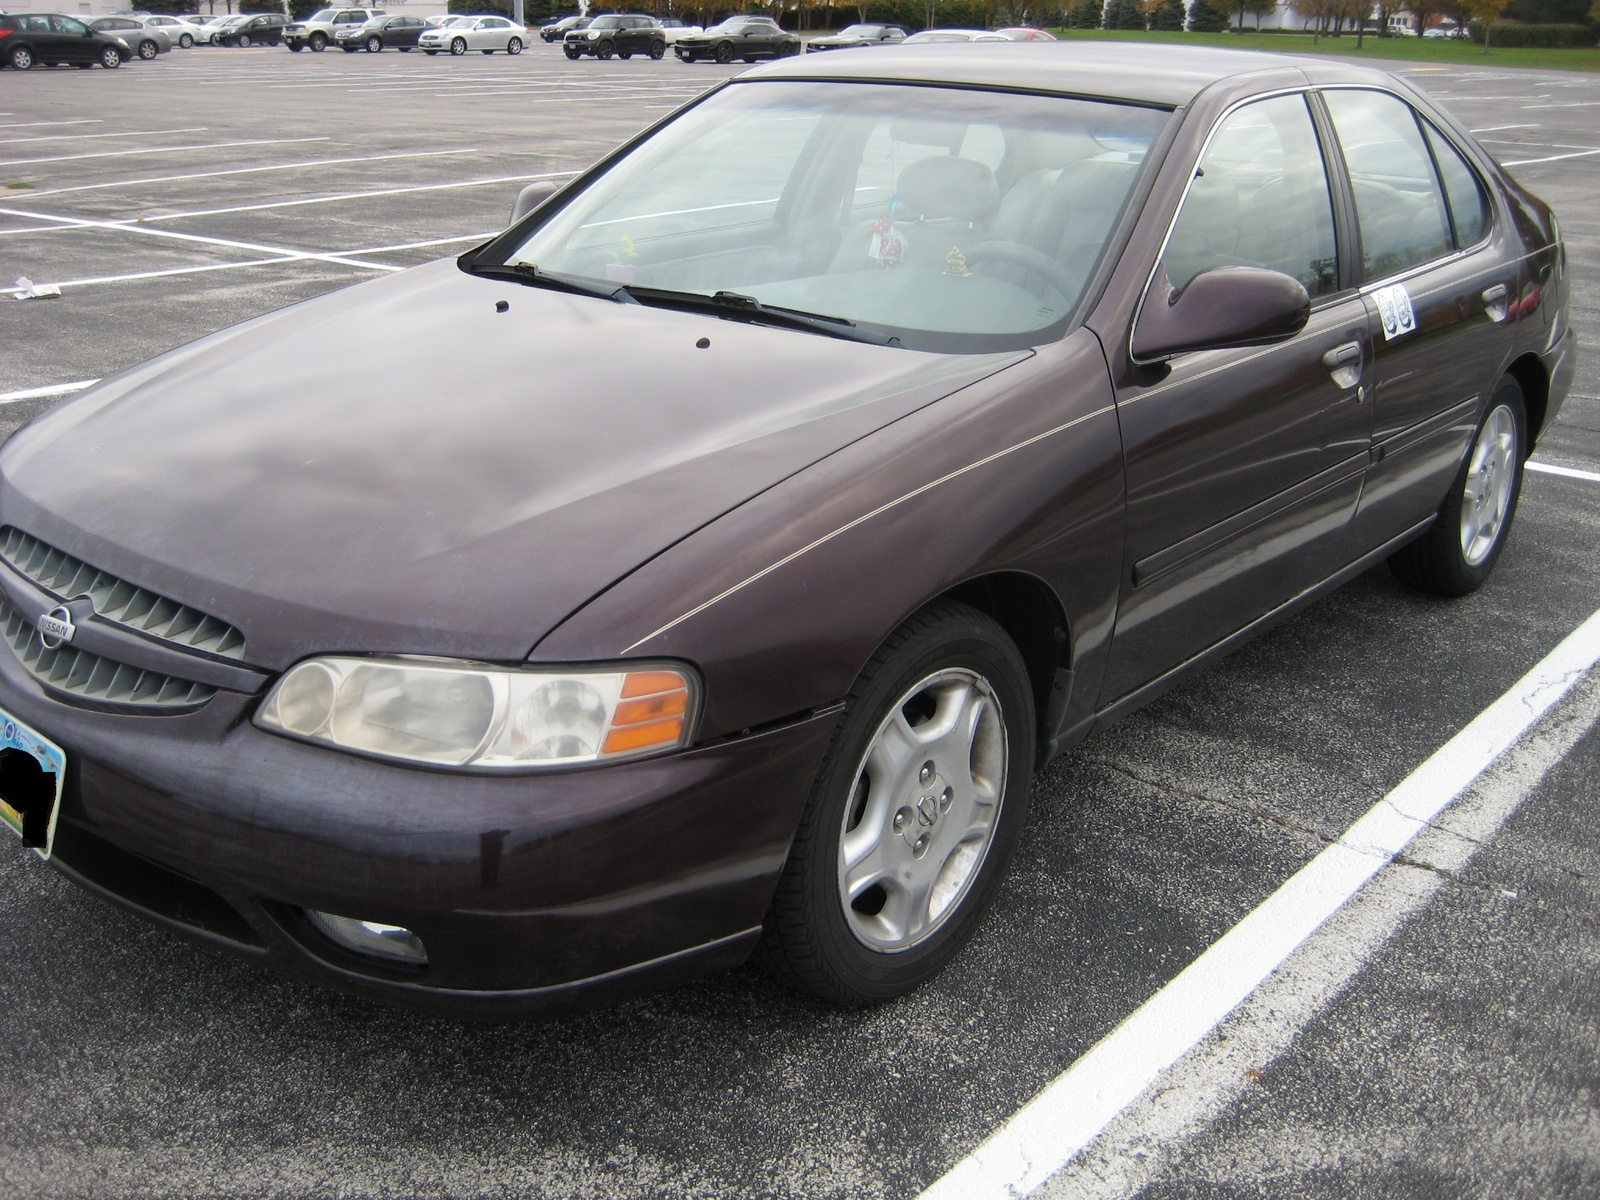 1994 nissan altima with 2000 Nissan Altima Pictures C3017 Pi36452596 on andymohr as well 2005 Toyota Camry Pictures C3956 pi36418112 as well 2009 Nissan Maxima Pictures C21172 pi36346261 as well 2013 Nissan Altima Pictures C23398 pi36222956 together with 5991 1994 Nissan Altima 12.